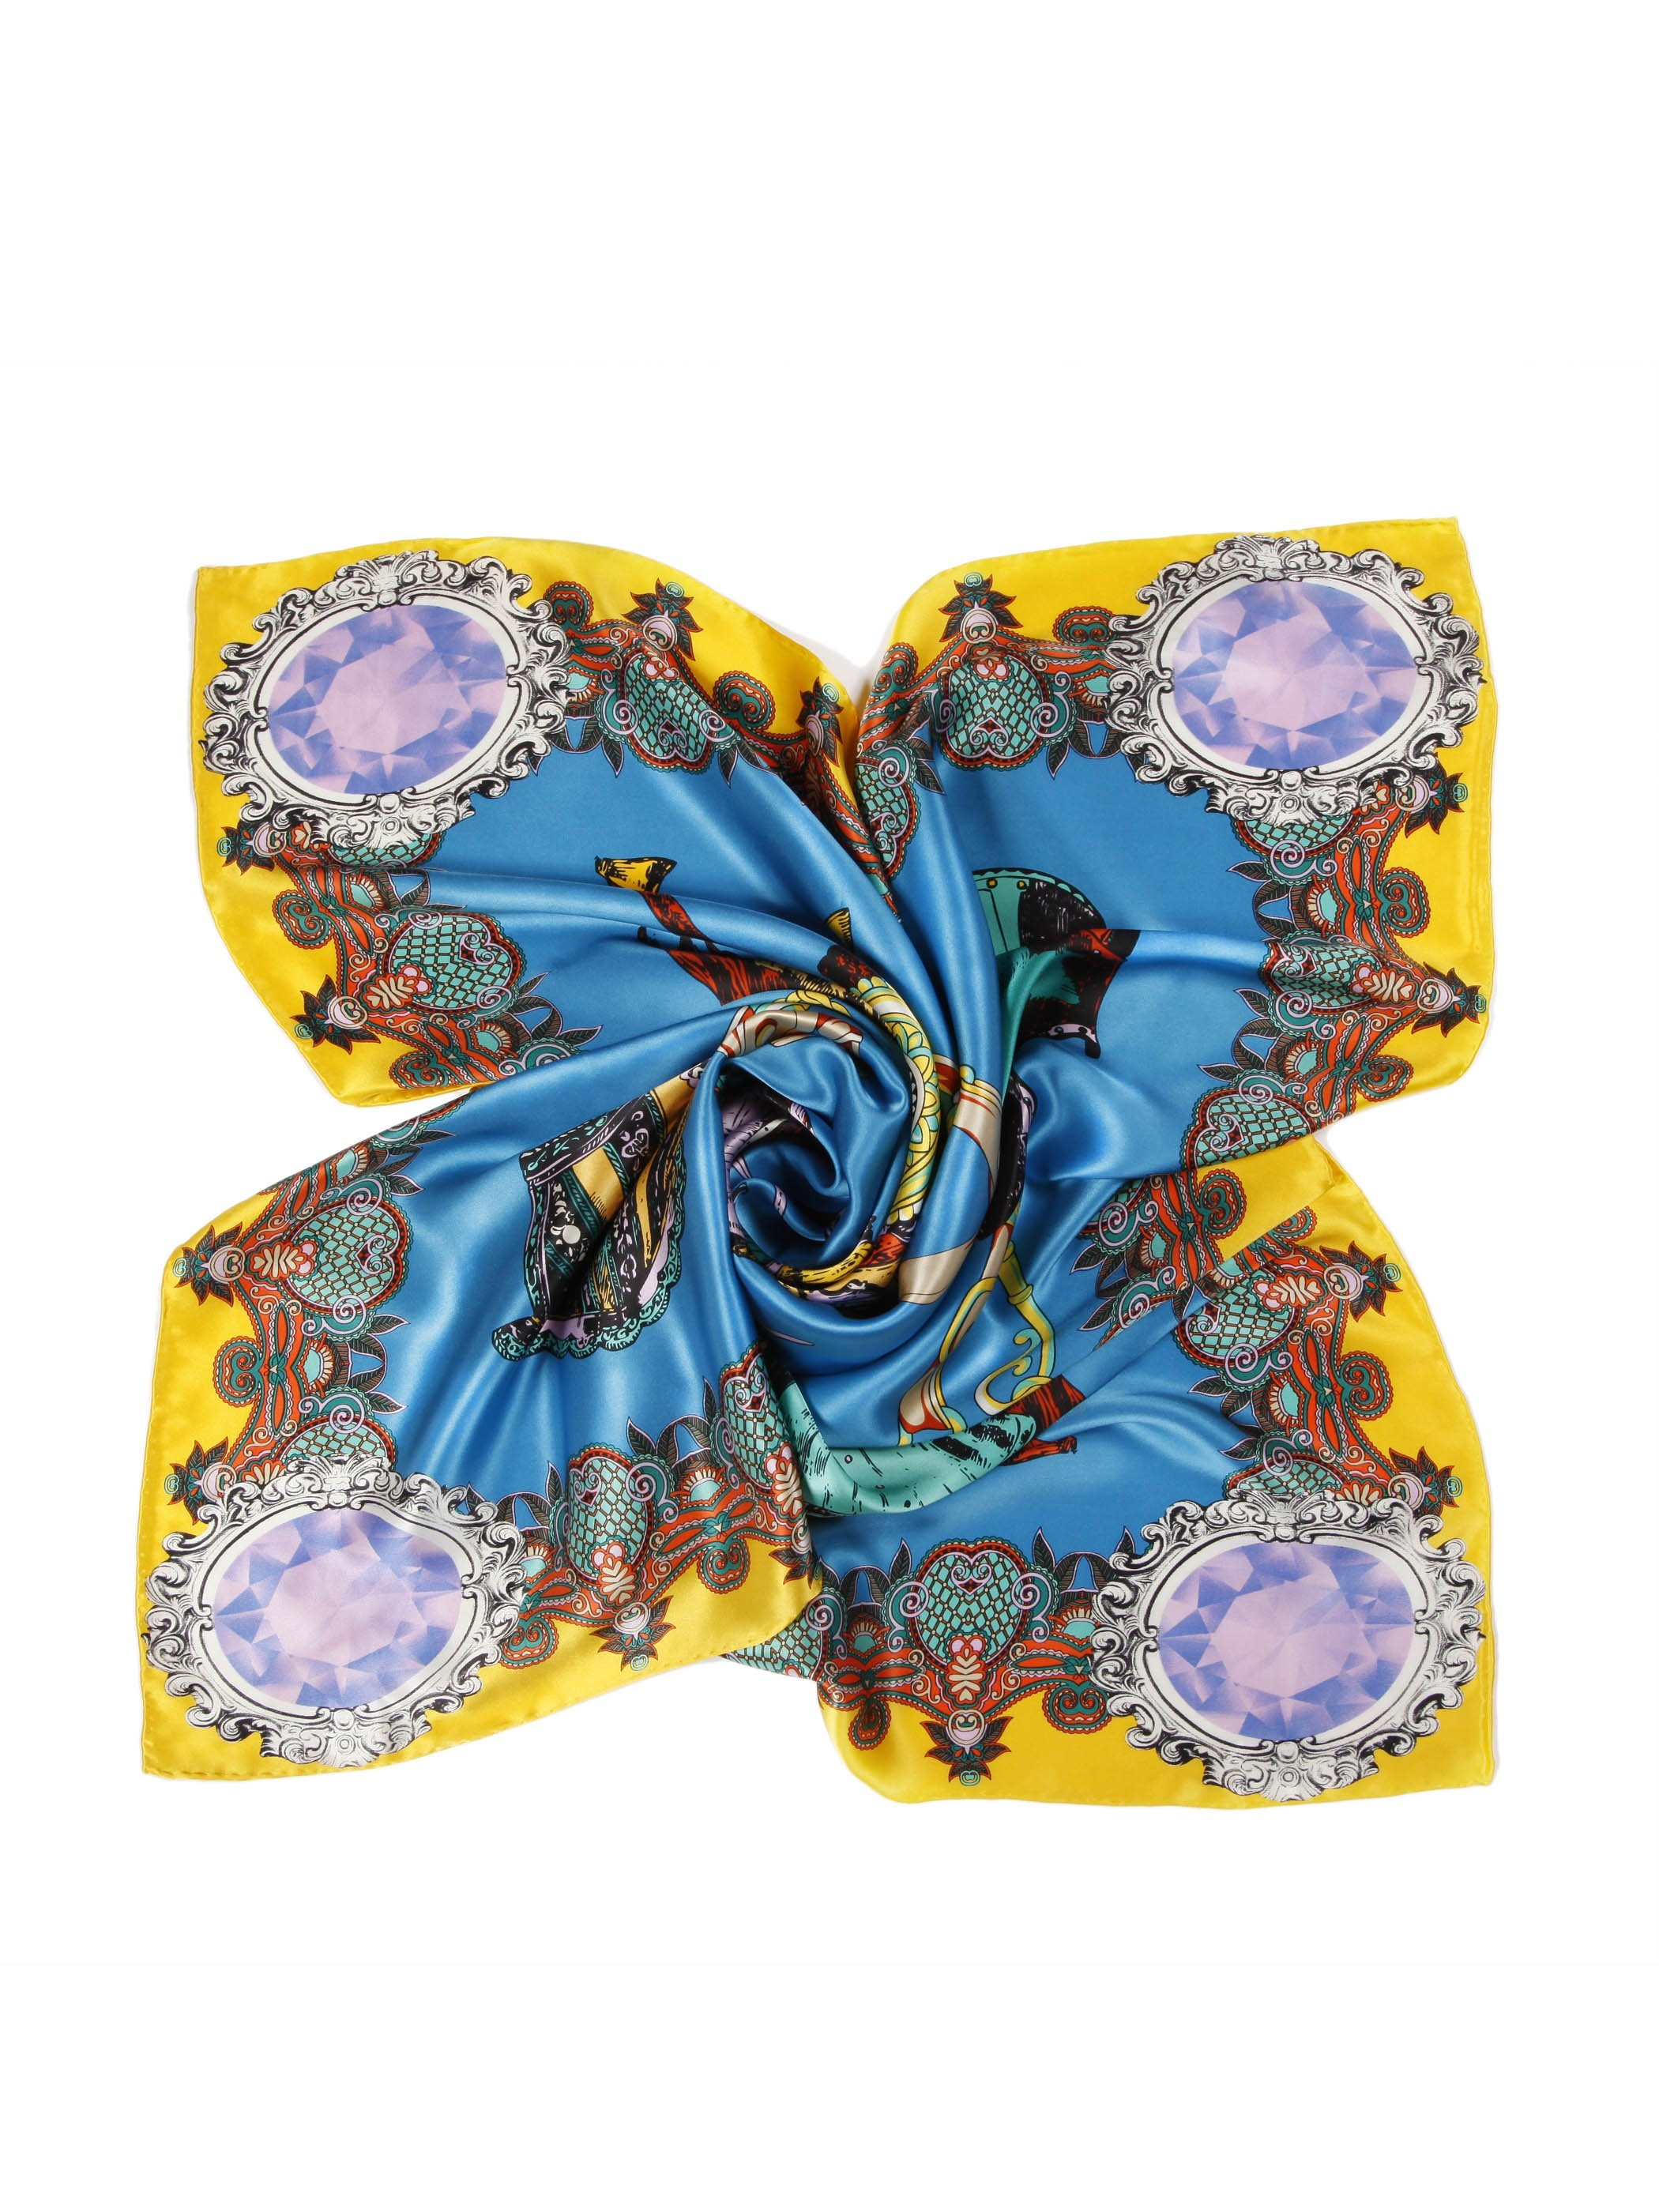 Buy low price, high quality brightly colored scarves with worldwide shipping on hereffil53.cf